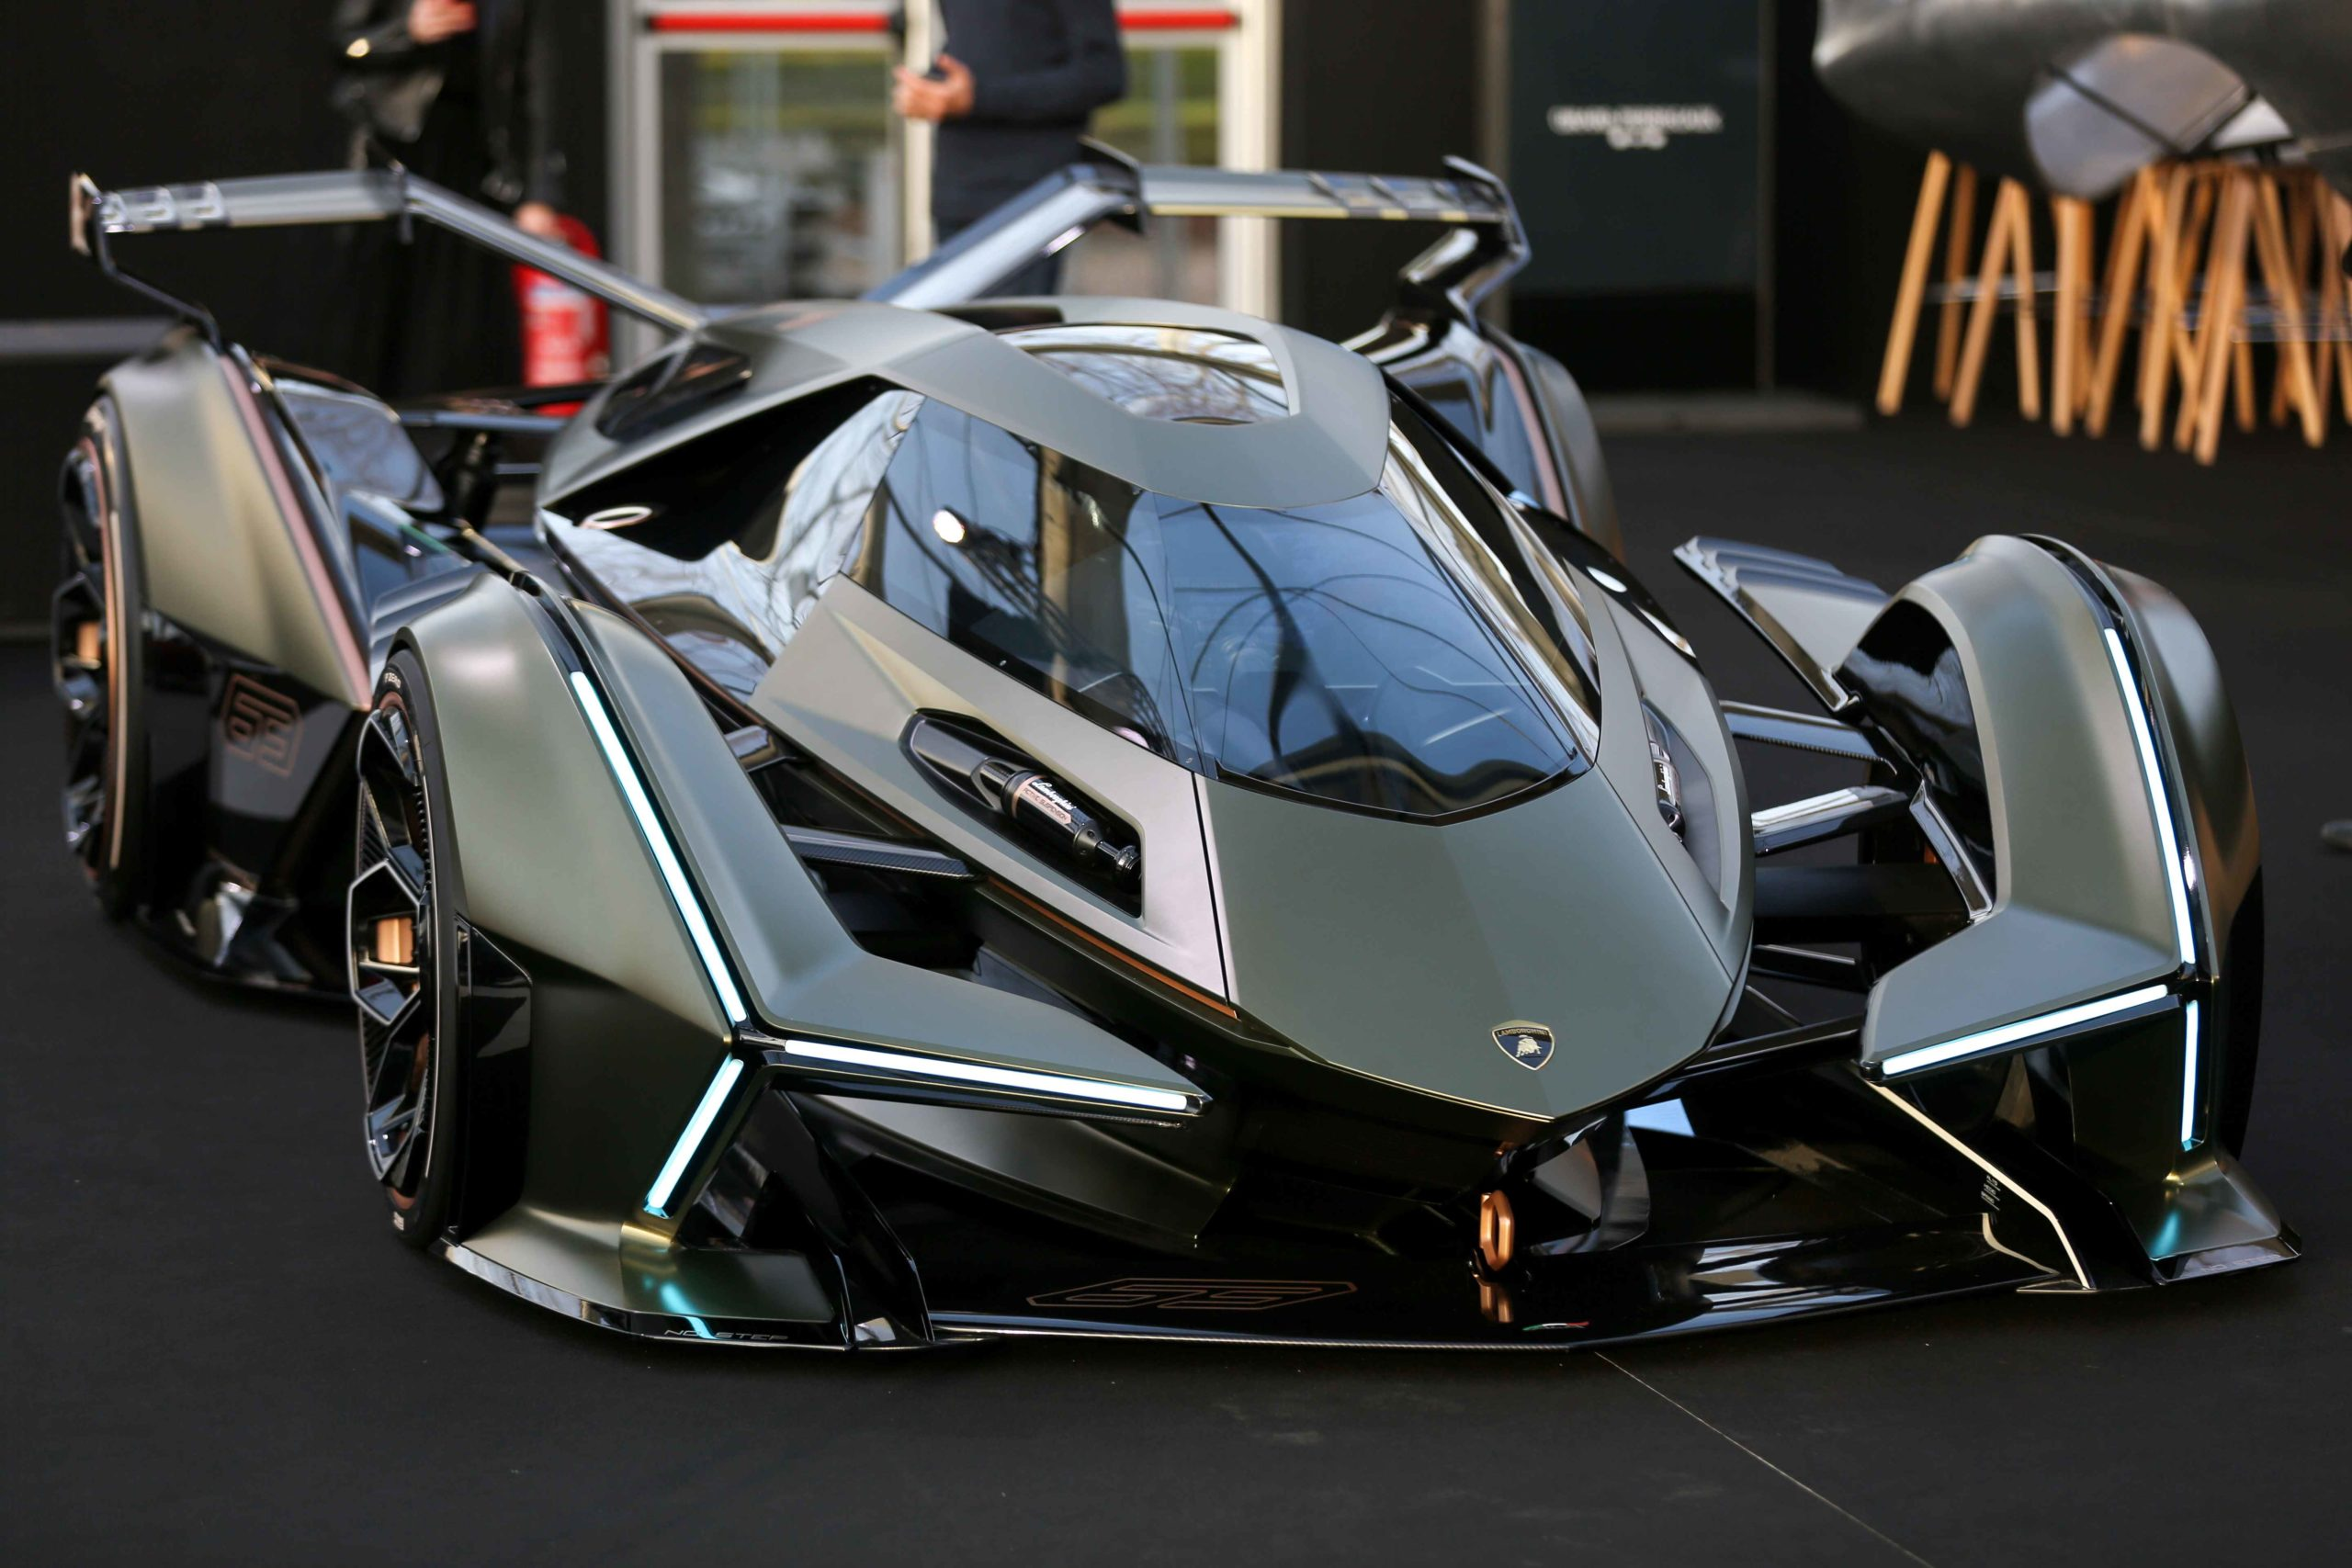 A Lamborghini Lambo V12 Gran Turismo is displayed during the press day of the 2020 concept-cars exhibition and automobile design in Paris on January 20, 2020. The latest concept-cars and supercars are displayed during this exhibition where the greatest des